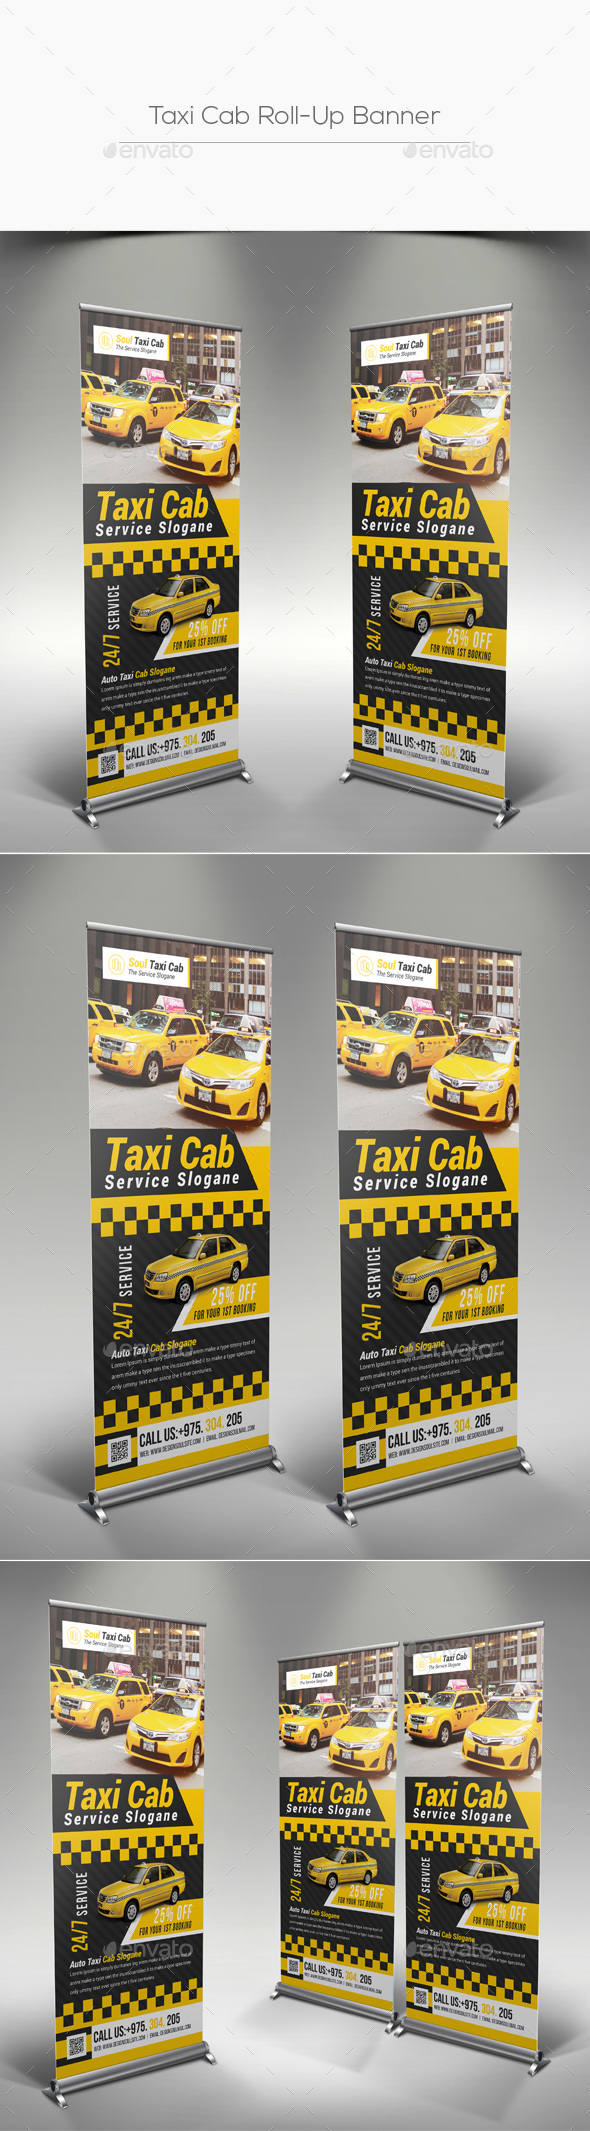 Taxi Cab Roll-Up Banner - Signage Print Templates